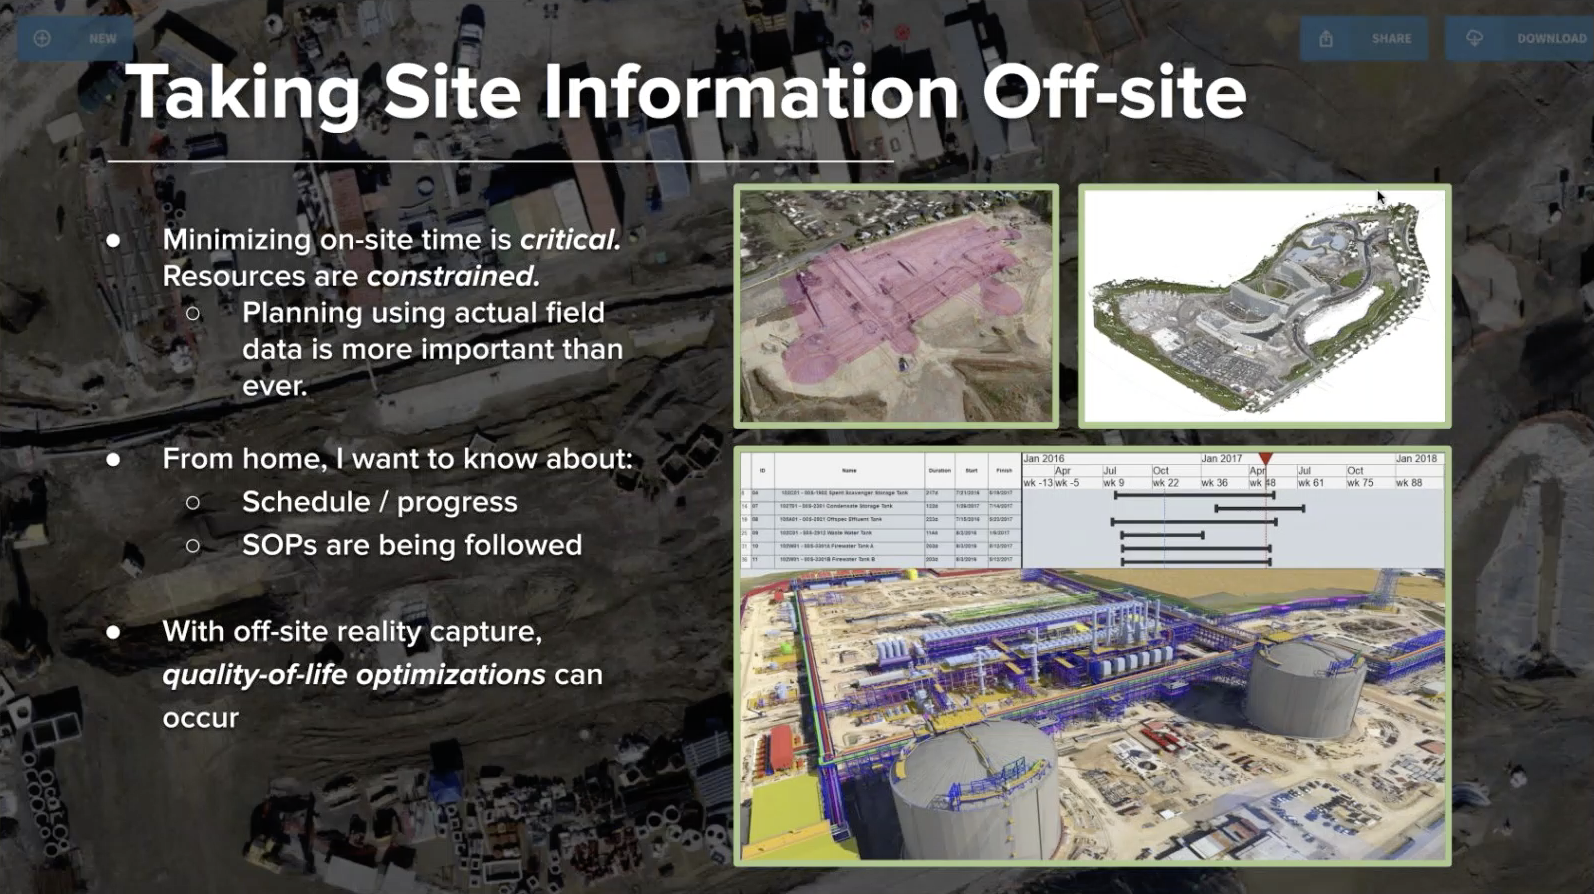 Taking Site Information Off-site